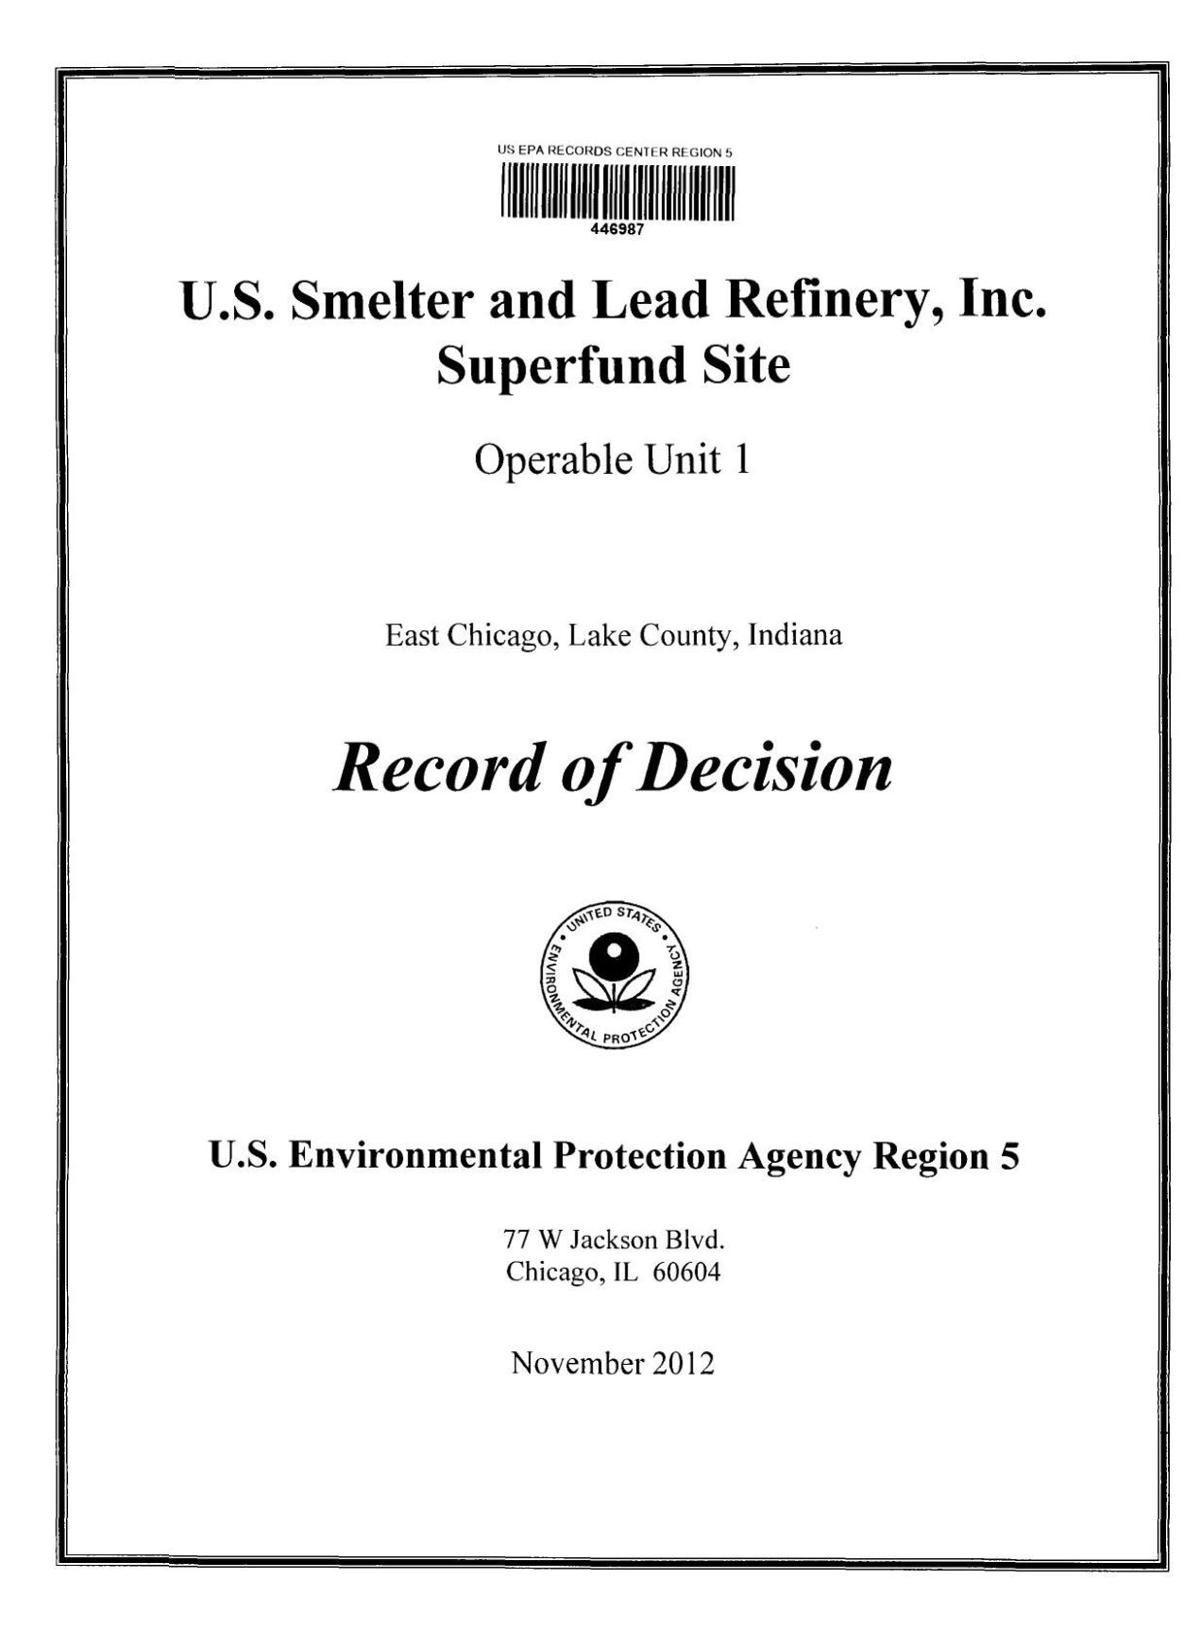 2012 Record of Decision for USS Lead site